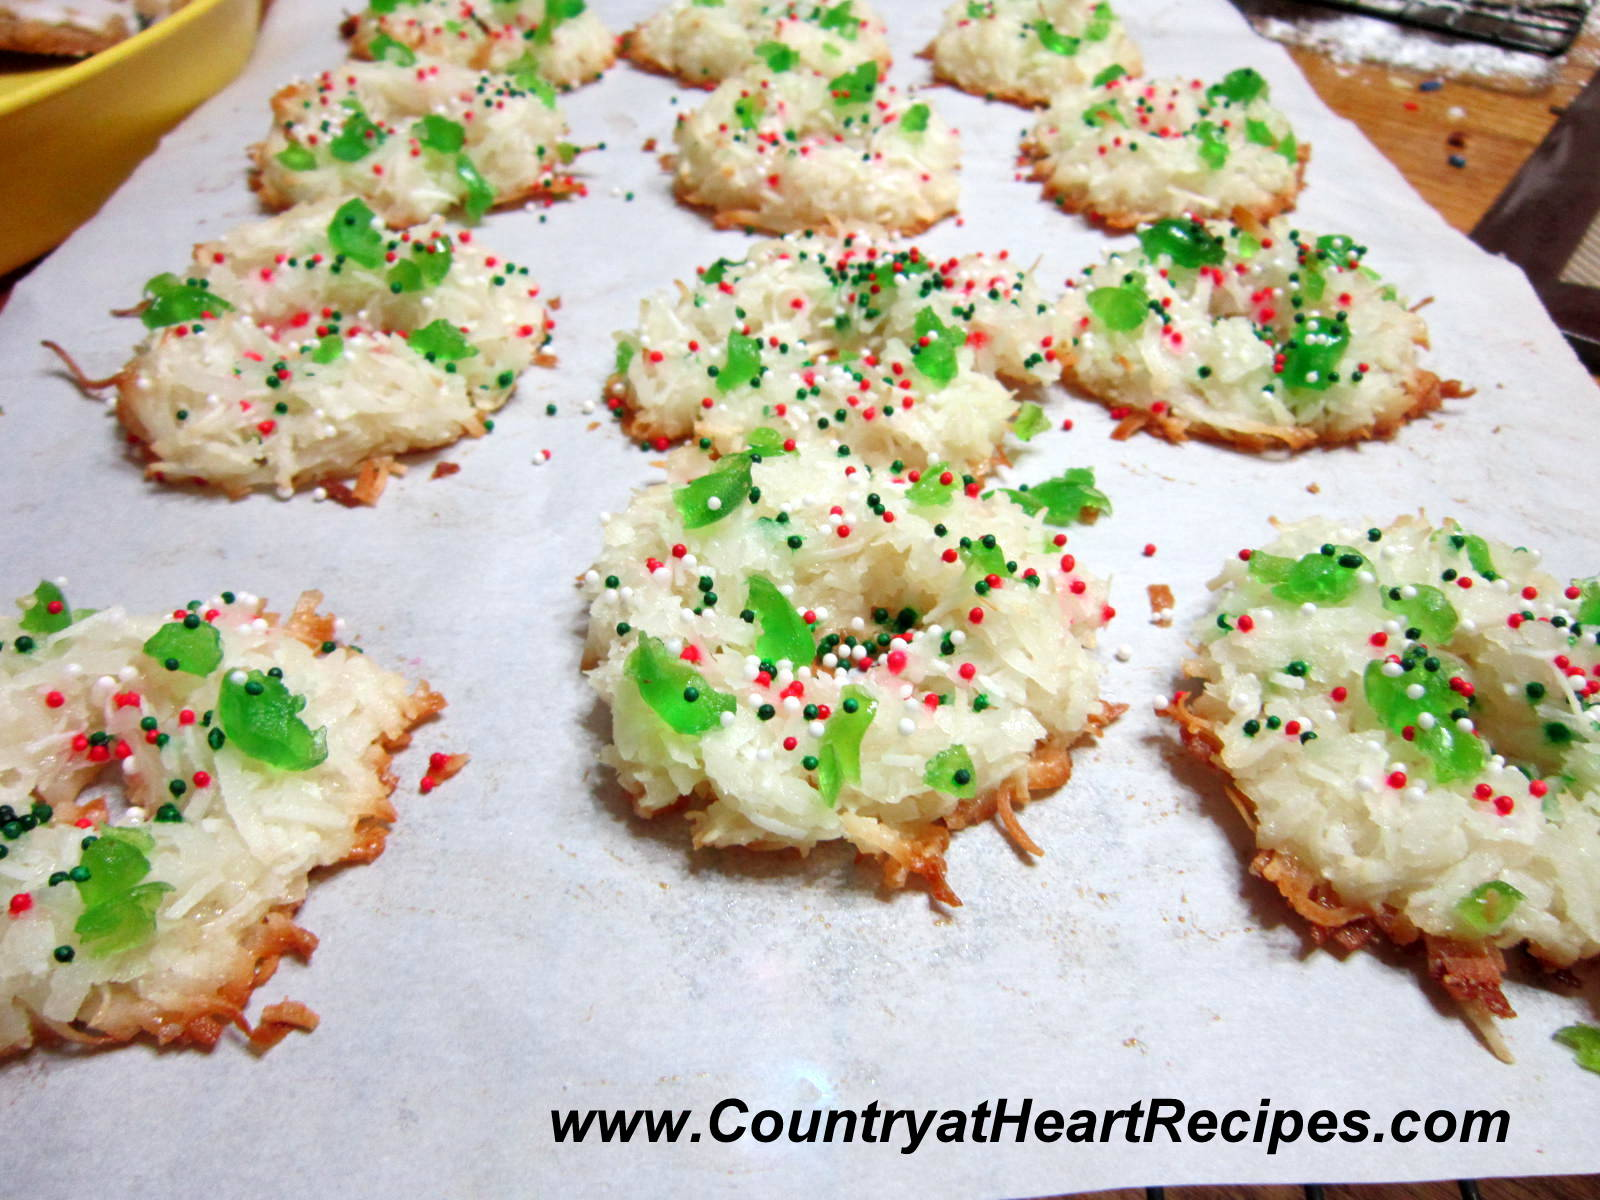 country at heart recipes 2015